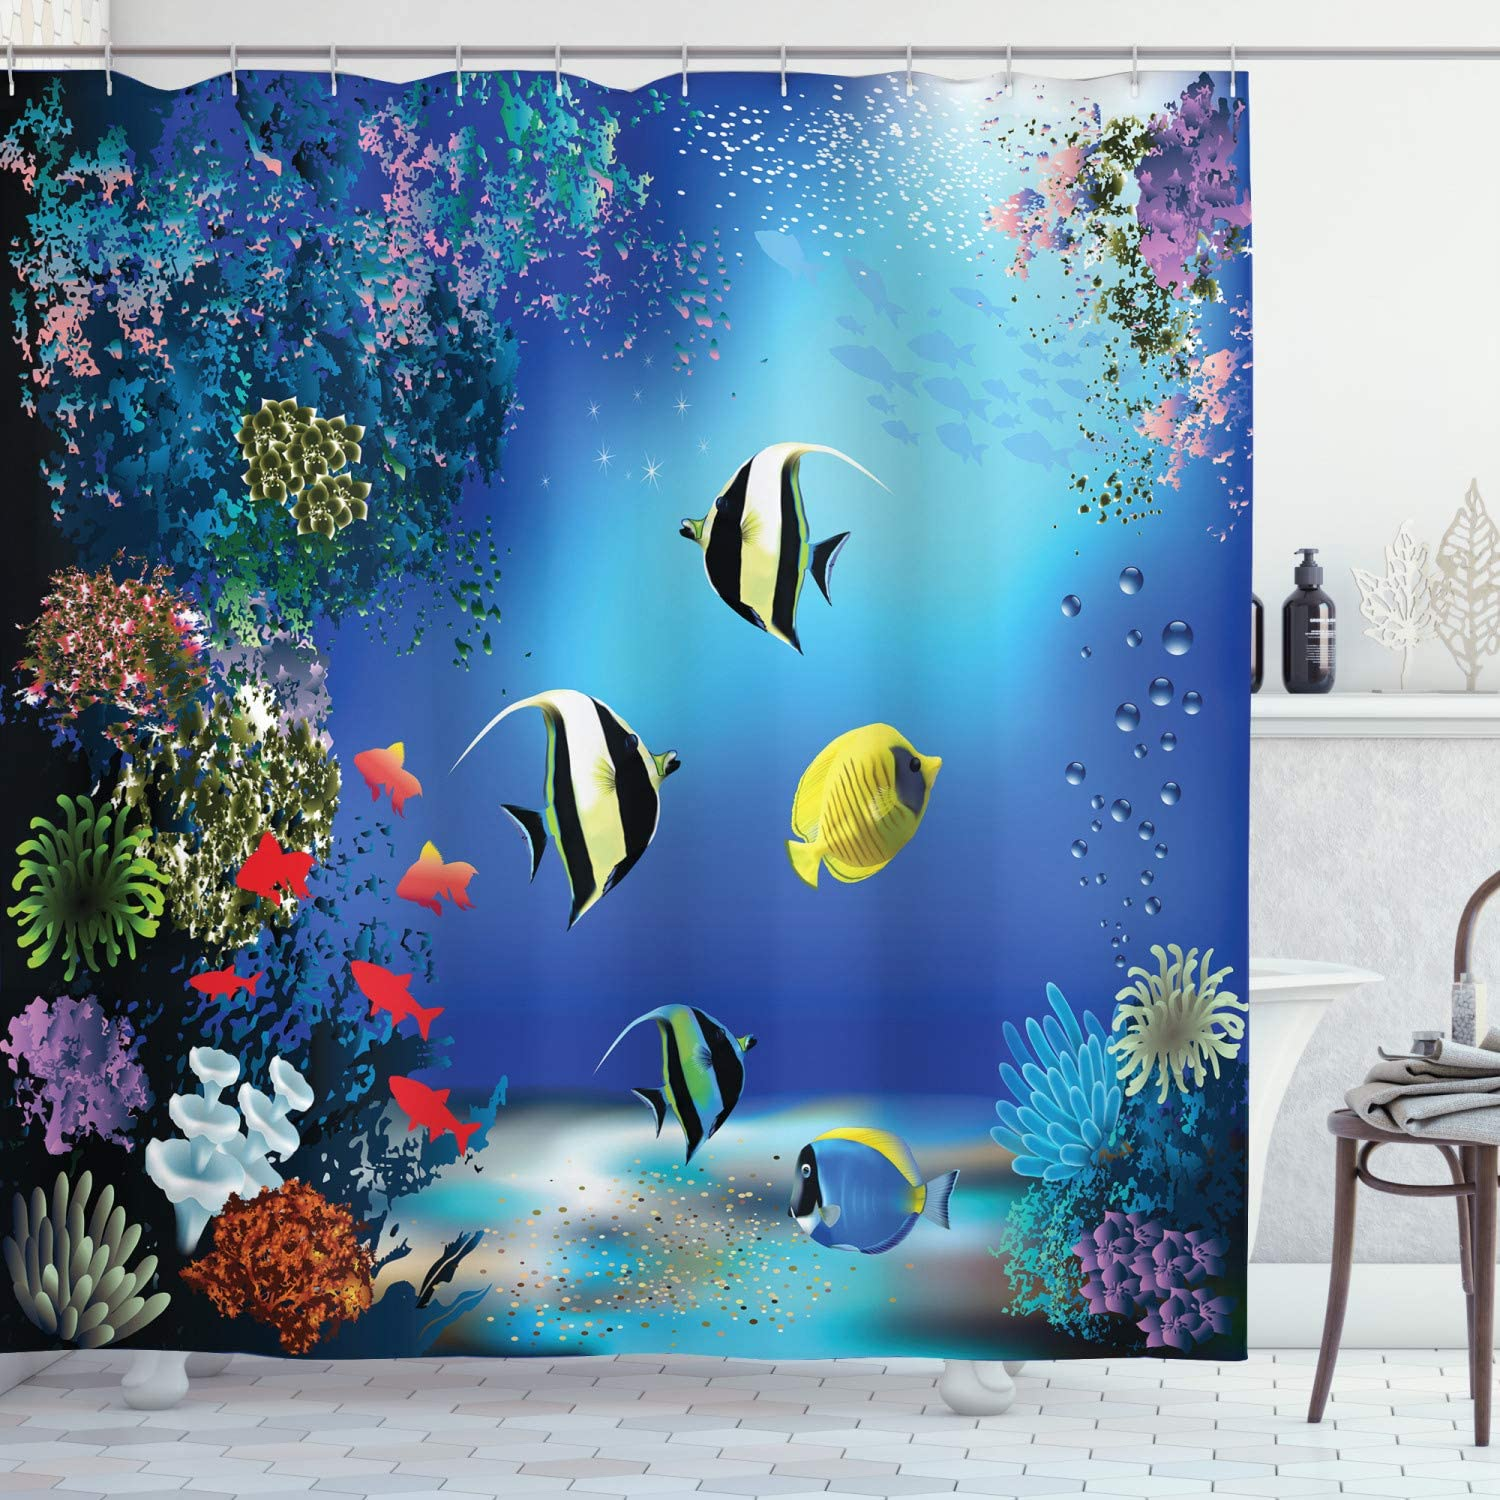 Turtle Shower Curtain Tropic Waters Coral Reef Print for Bathroom